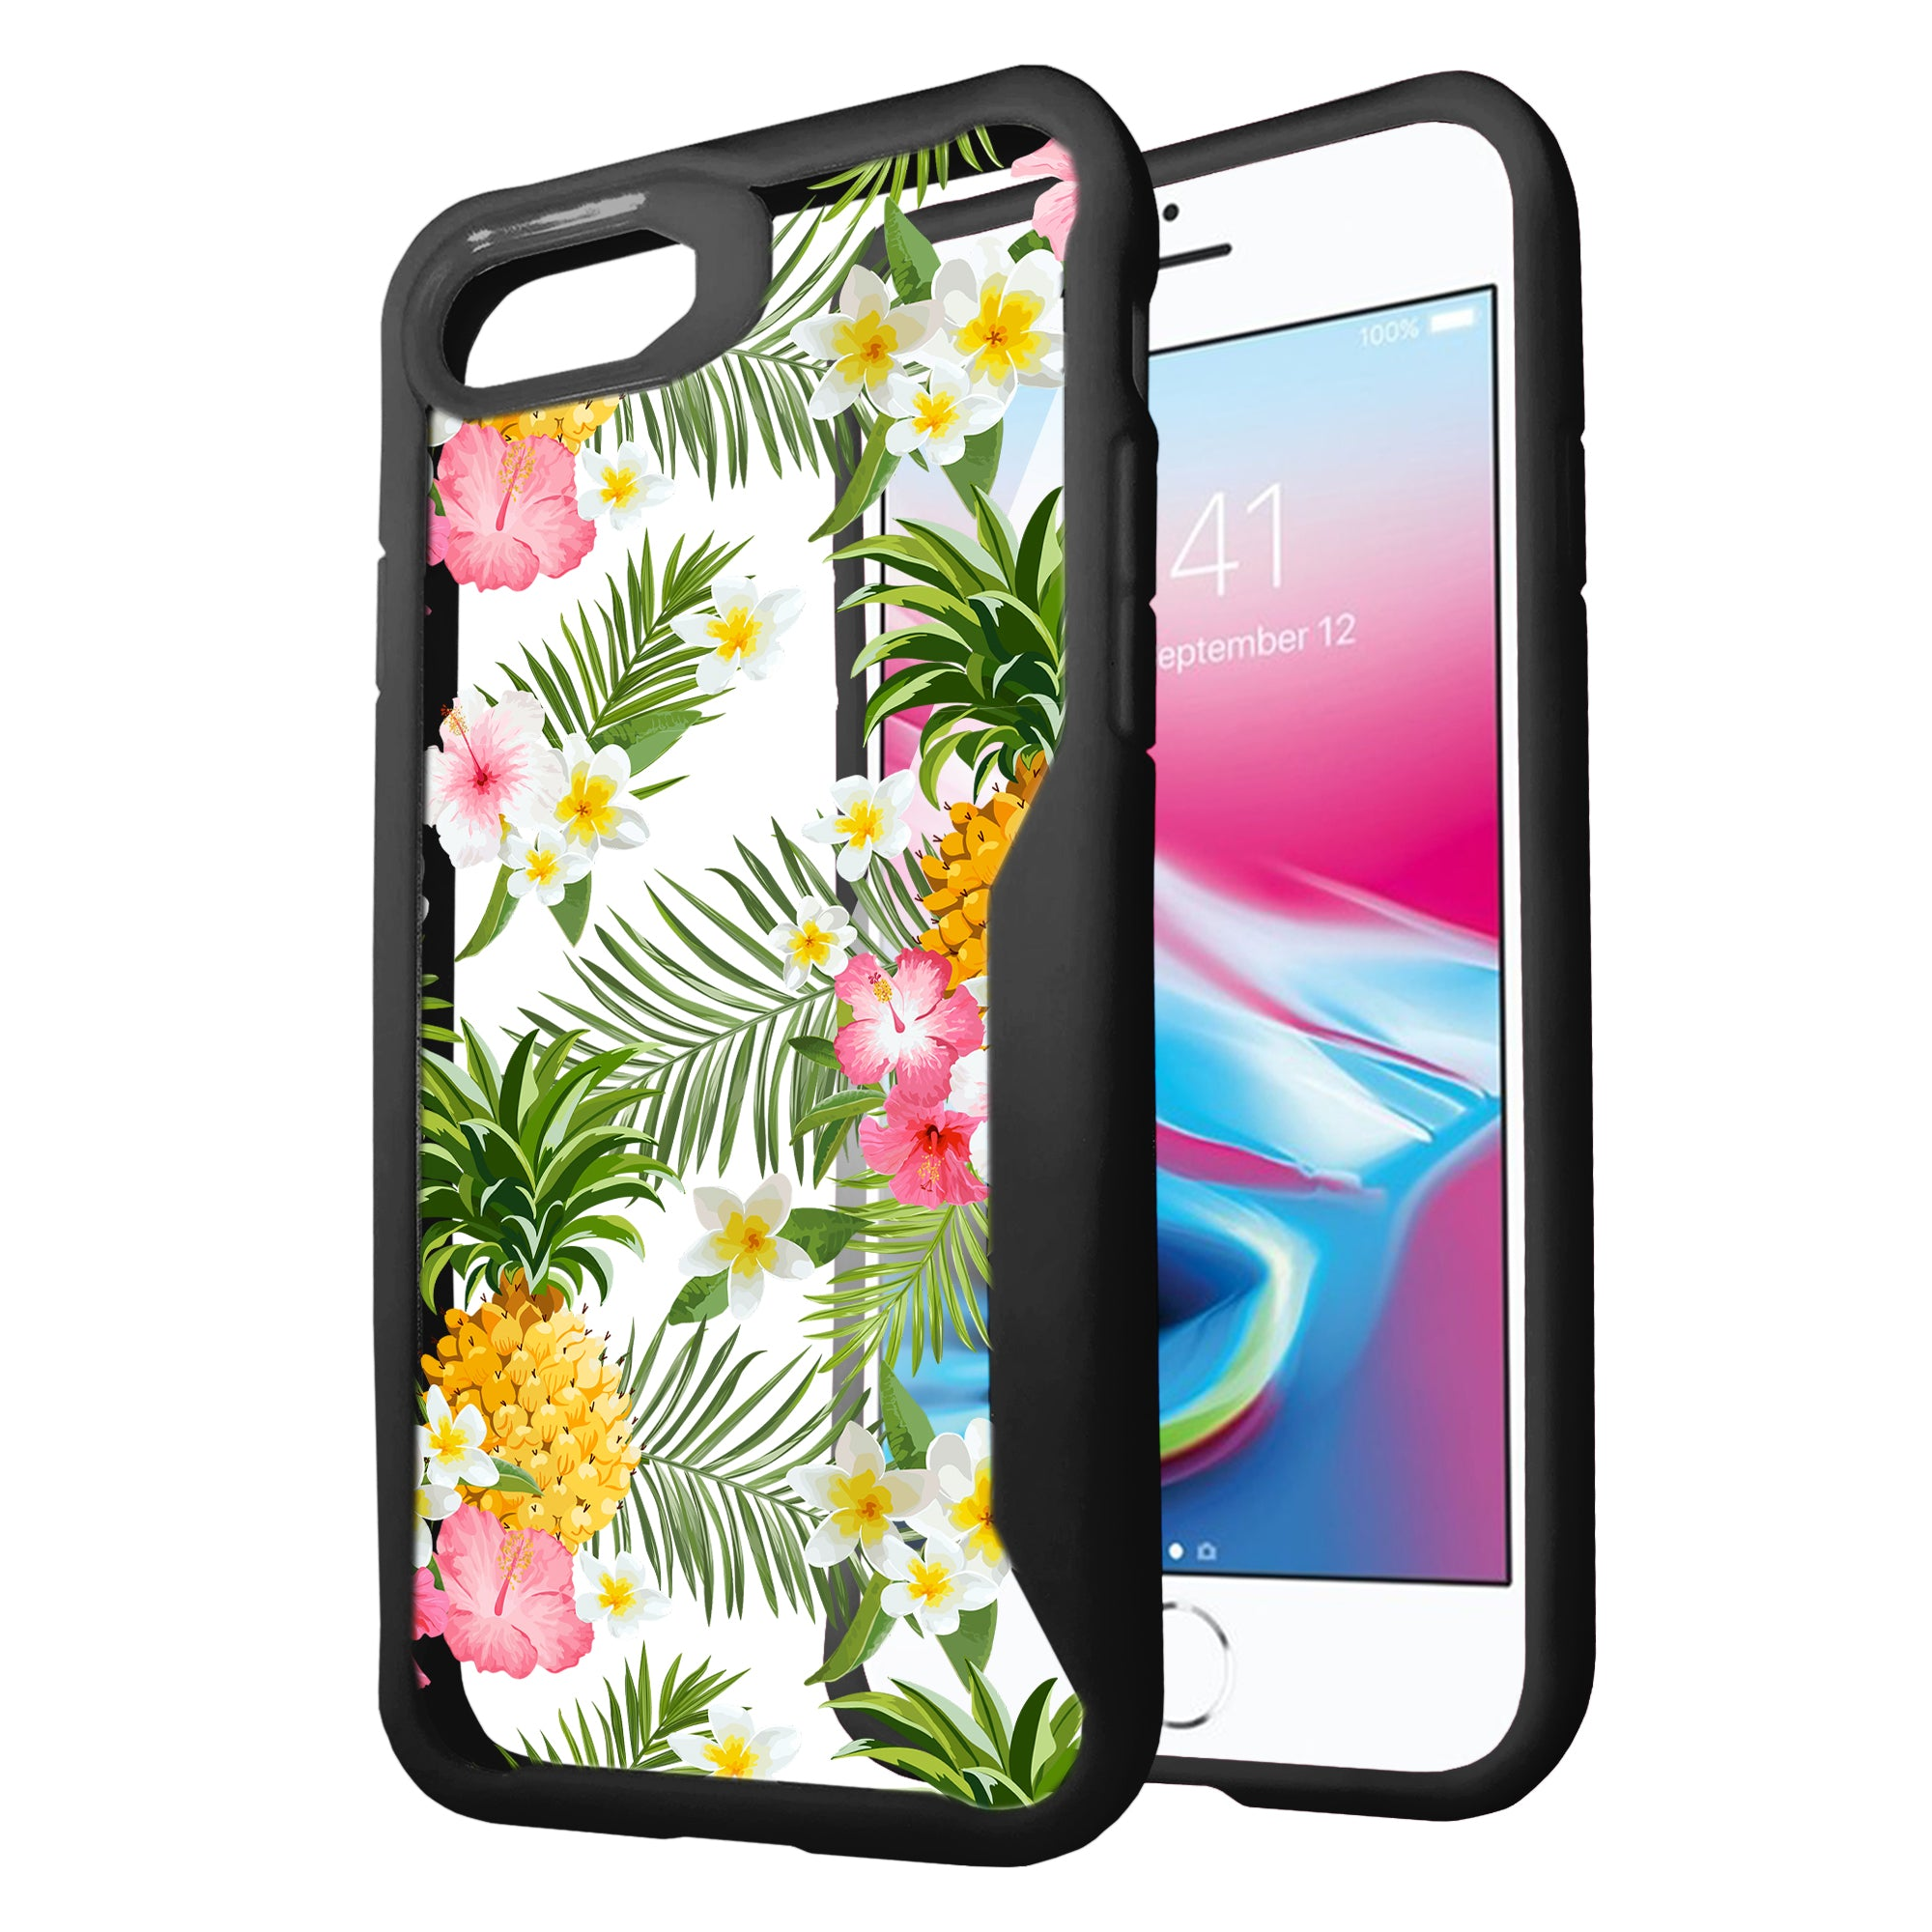 For-Apple-iPhone-8-Plus-Clear-Case-with-Black-Silicone-Edges-Floral-Design thumbnail 7